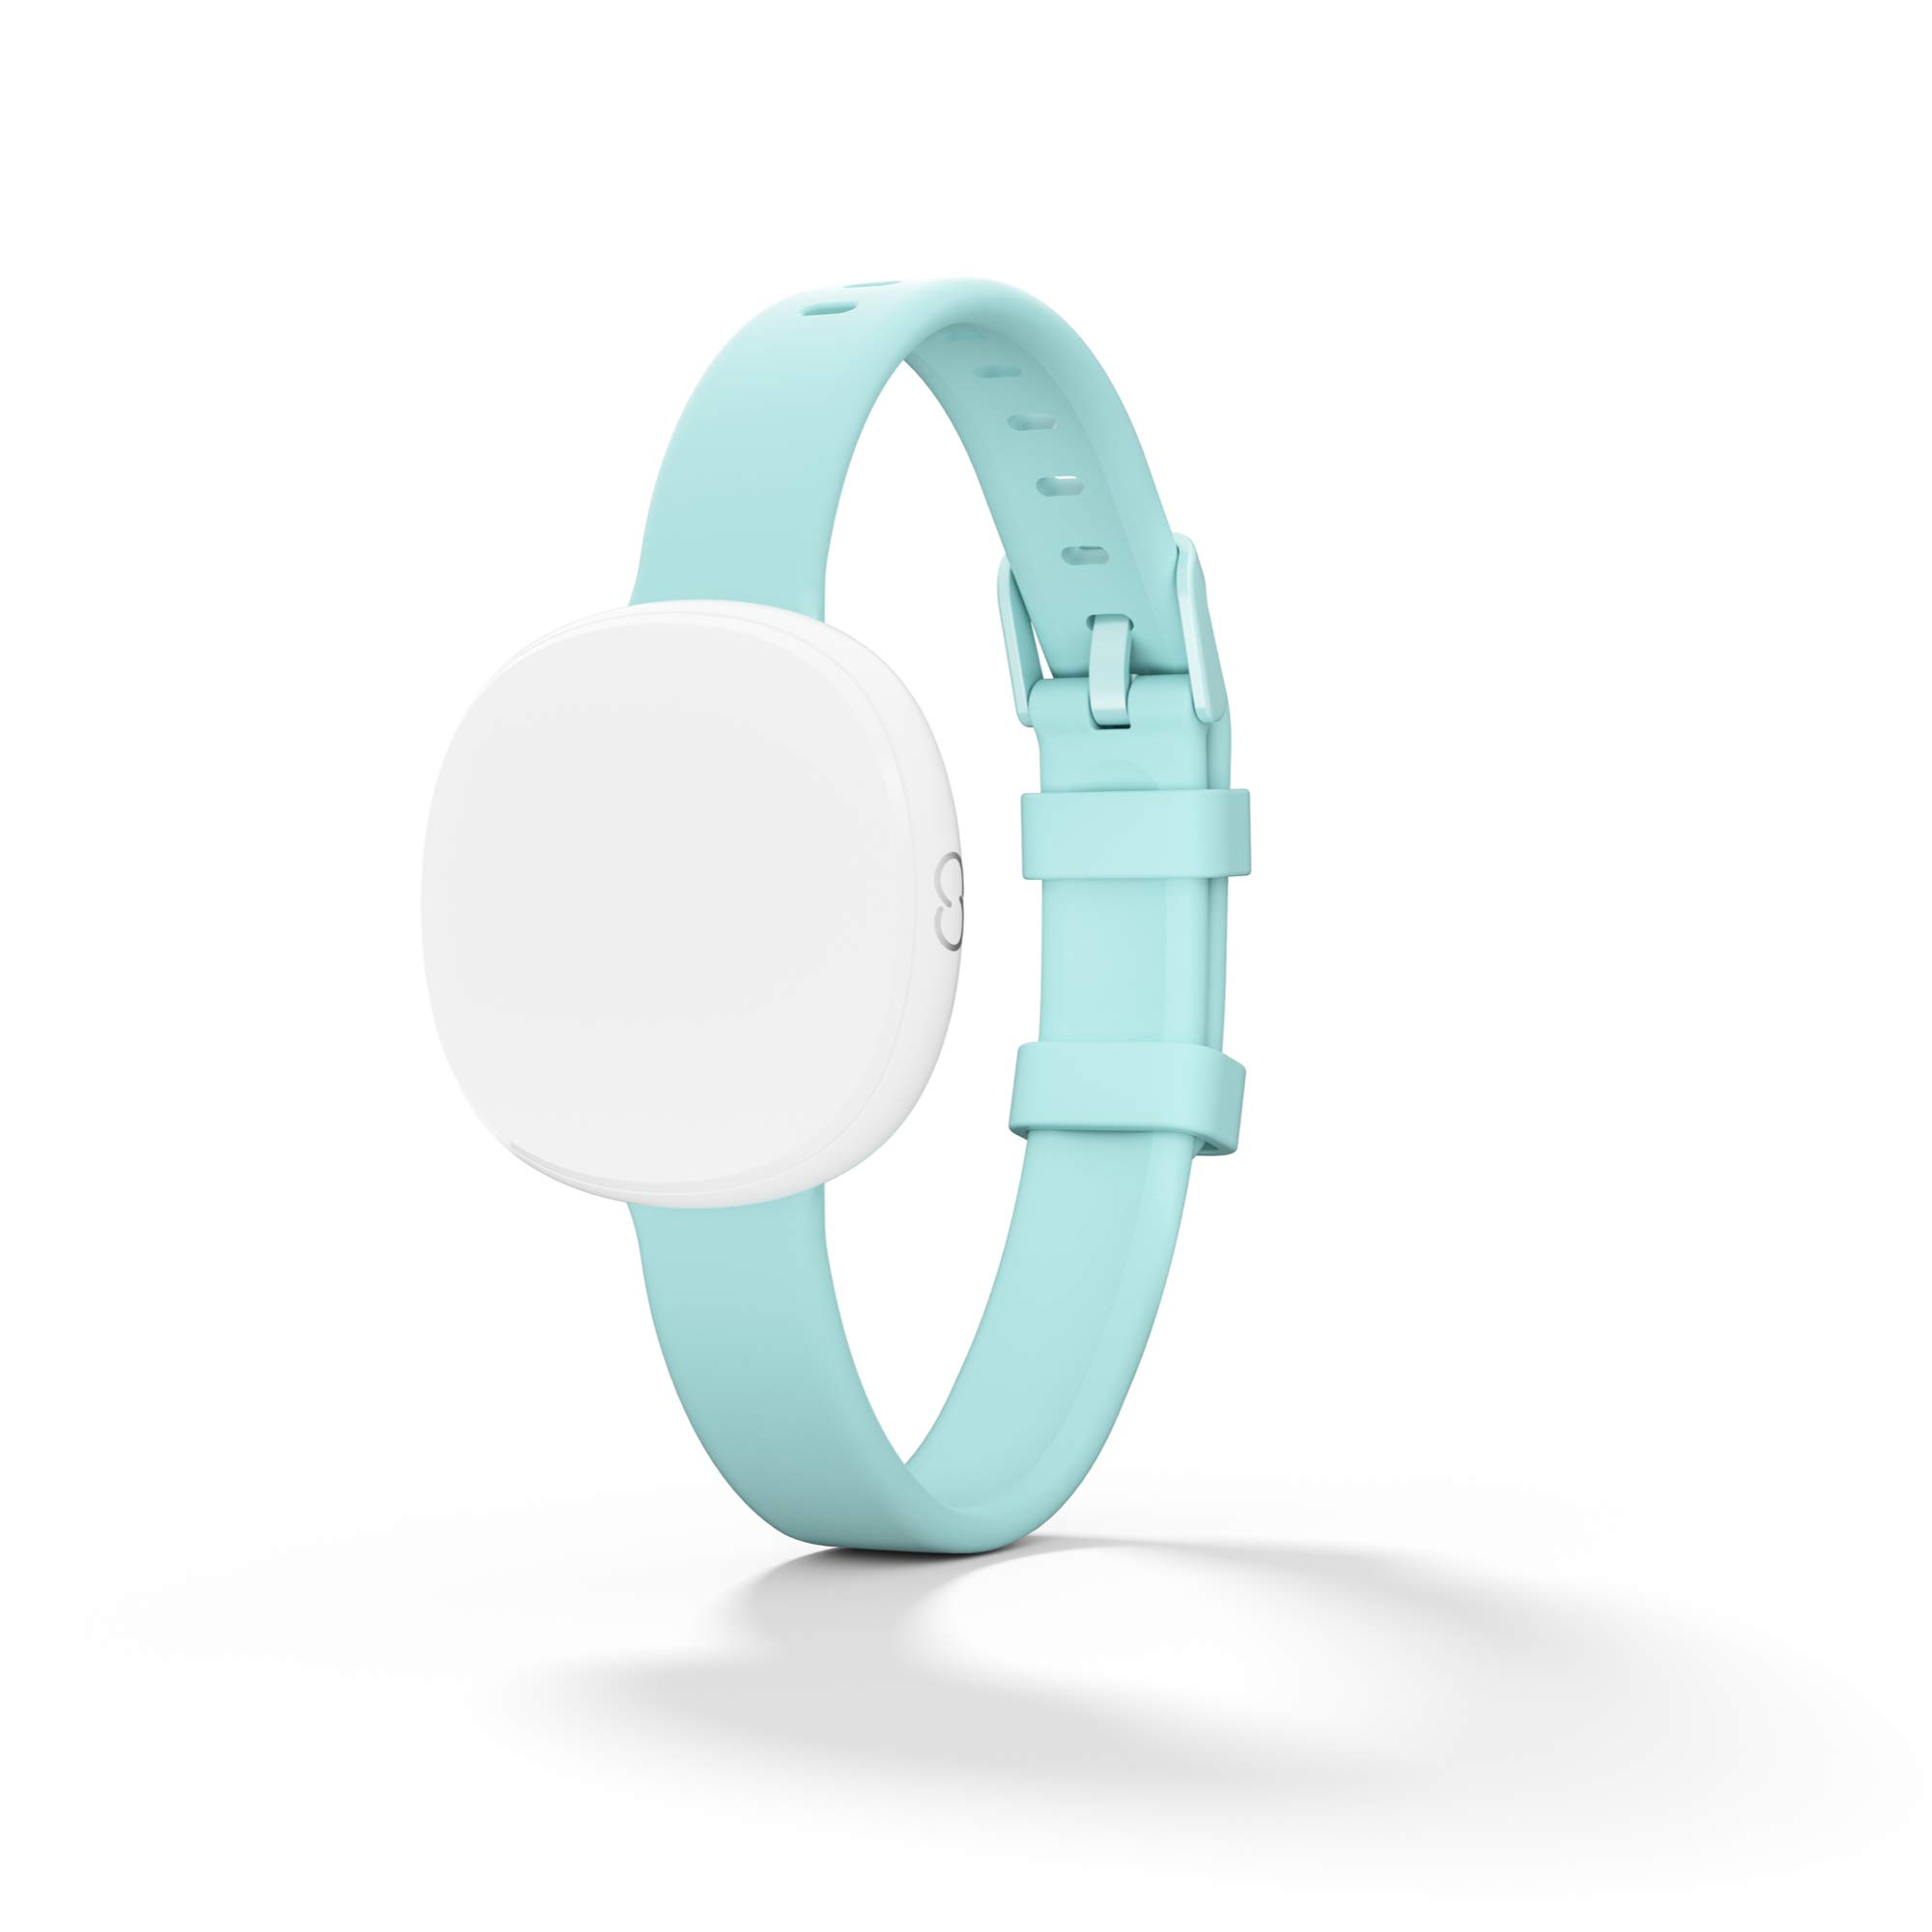 Ava  Fertility Tracker  2.0 -  Digital Fertility Tracking Bracelet  - Wearable Electronic Cycle Tracker, Conception Aid  and  Pregnancy Tracker by AVA